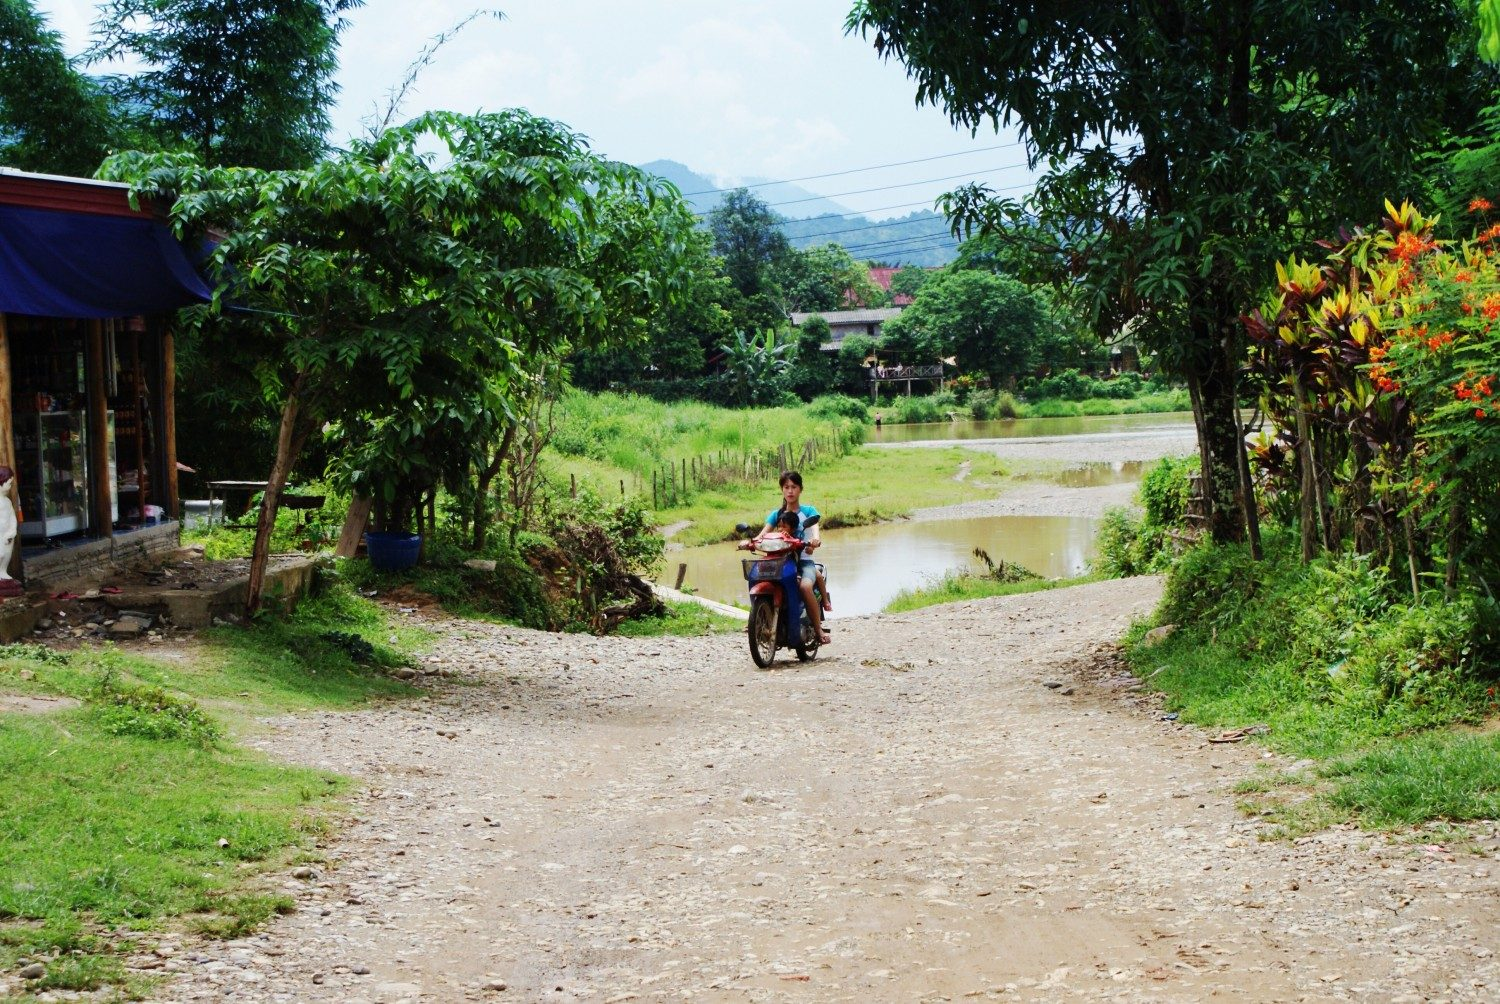 Walking in countryside outside of Vang Vieng Laos